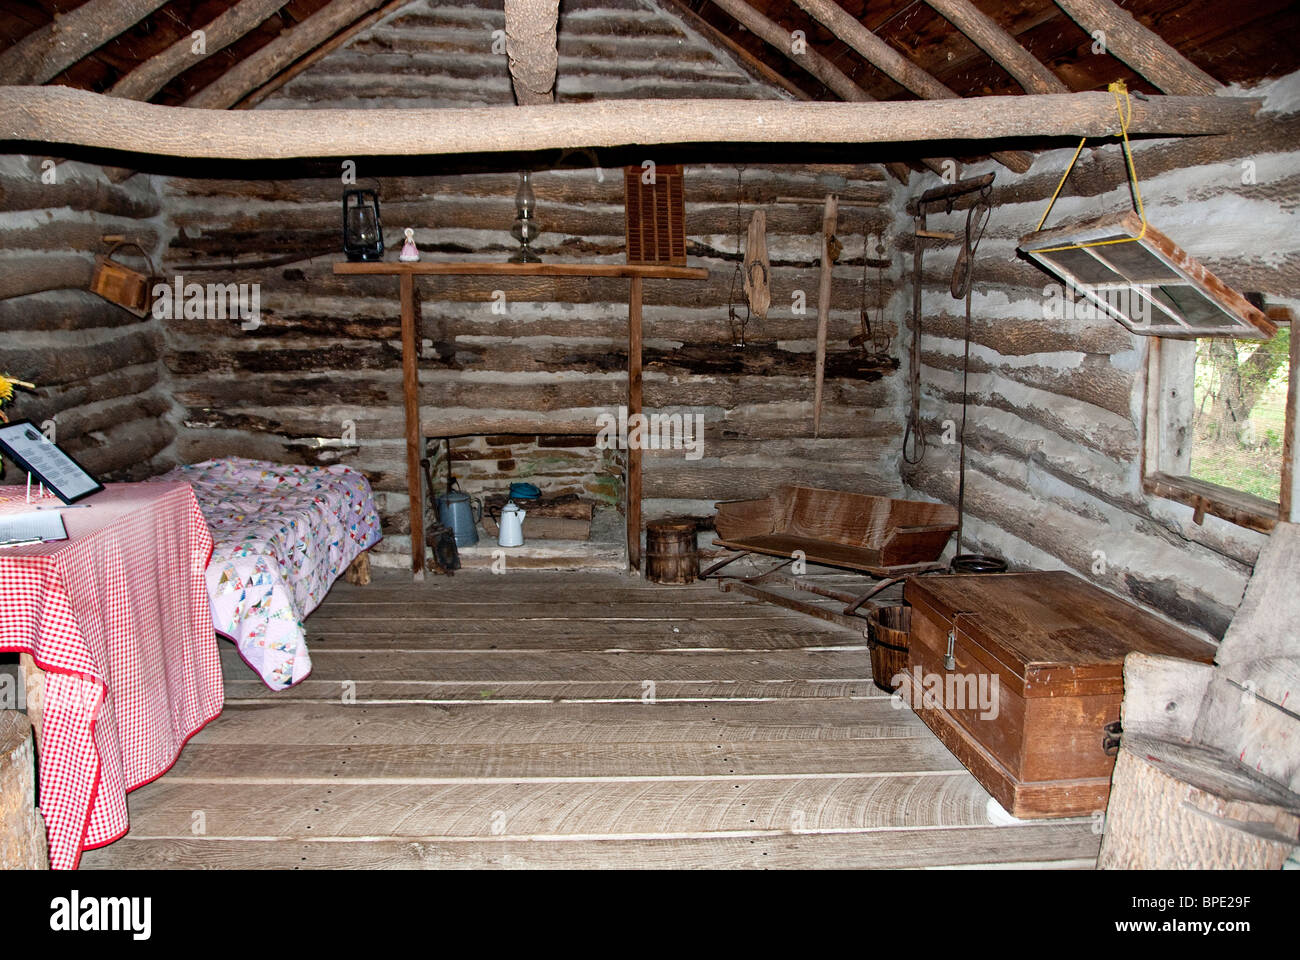 Inside the reconstructed cabin Little House on the Prairie Independence Kansas USA - Stock Image